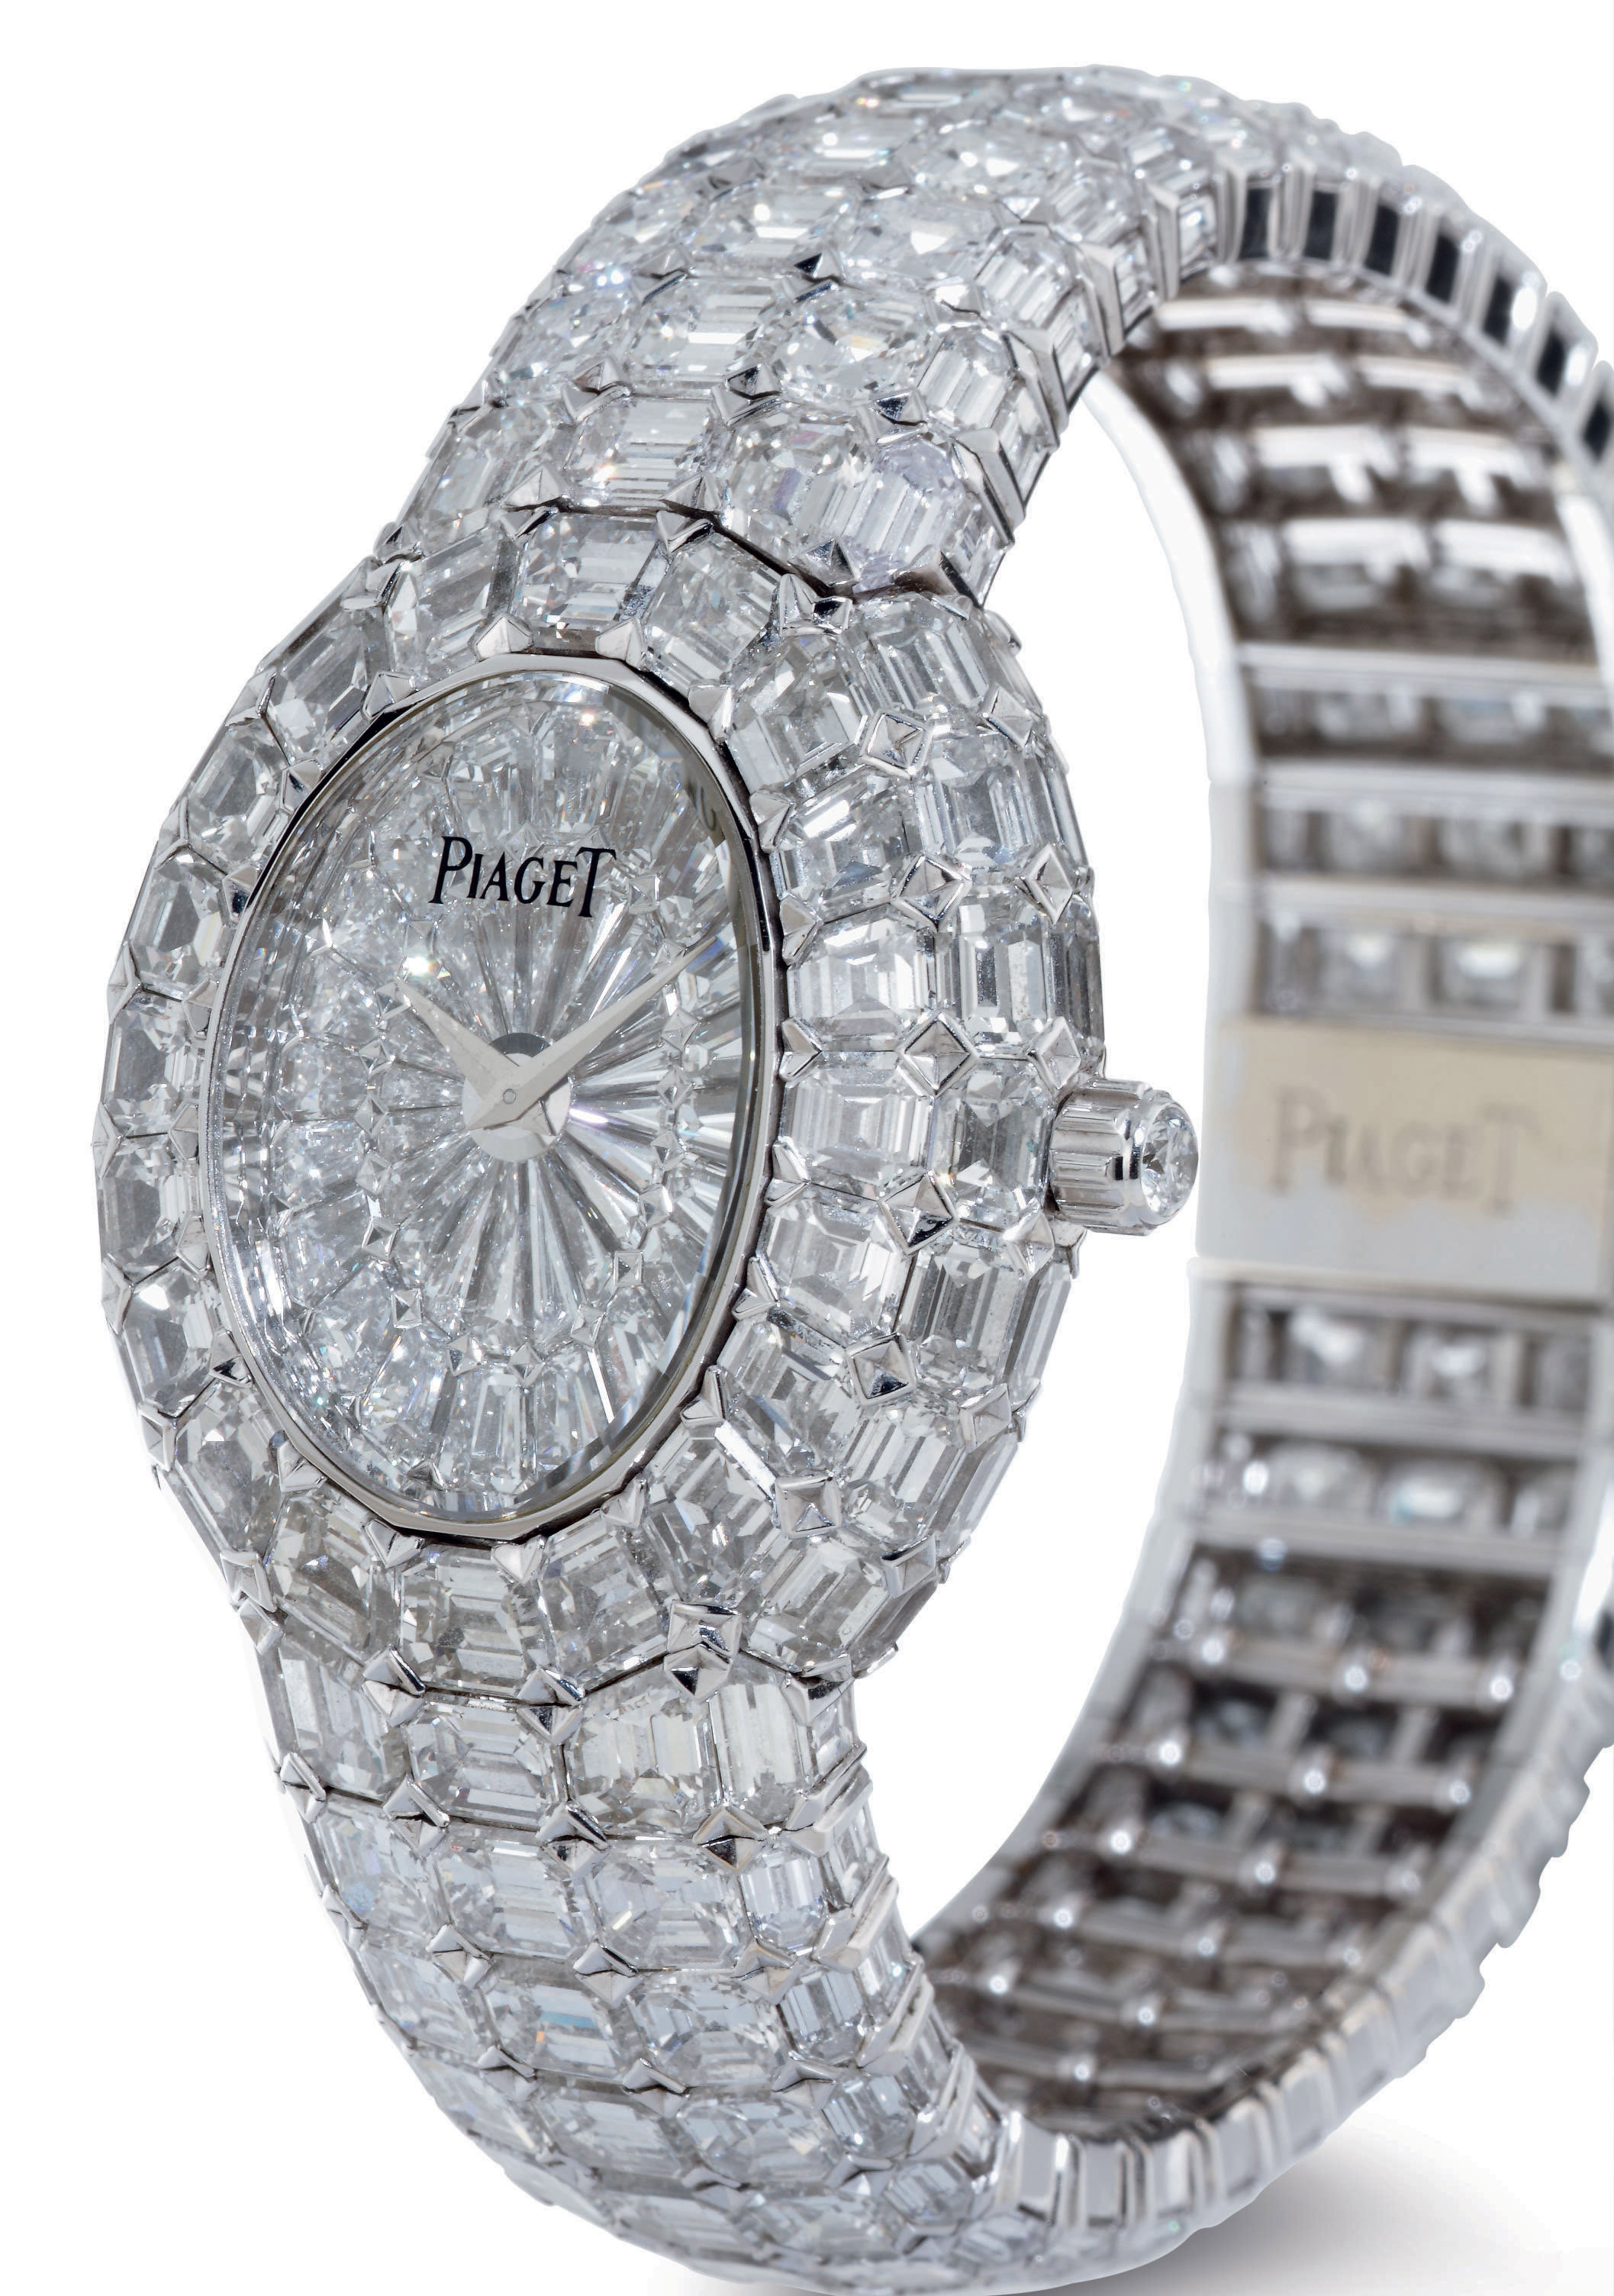 PIAGET.  AN EXTREMELY RARE AND SUPERLATIVE 18K WHITE GOLD AND DIAMOND WRISTWATCH WITH BRACELET